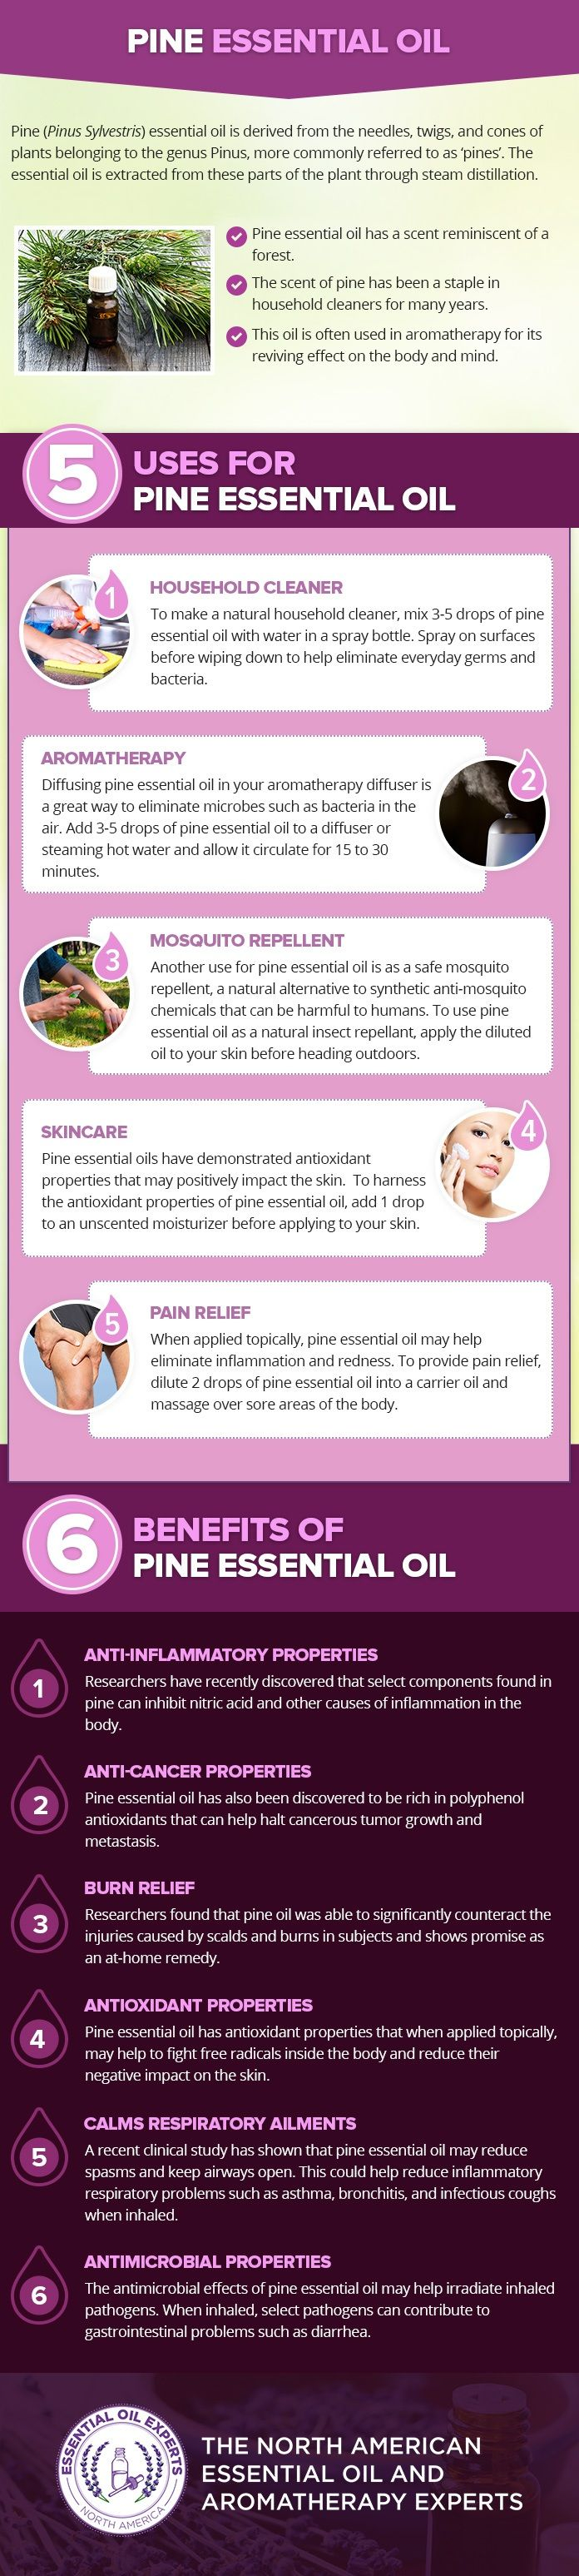 Pine essential oil uses and benefits